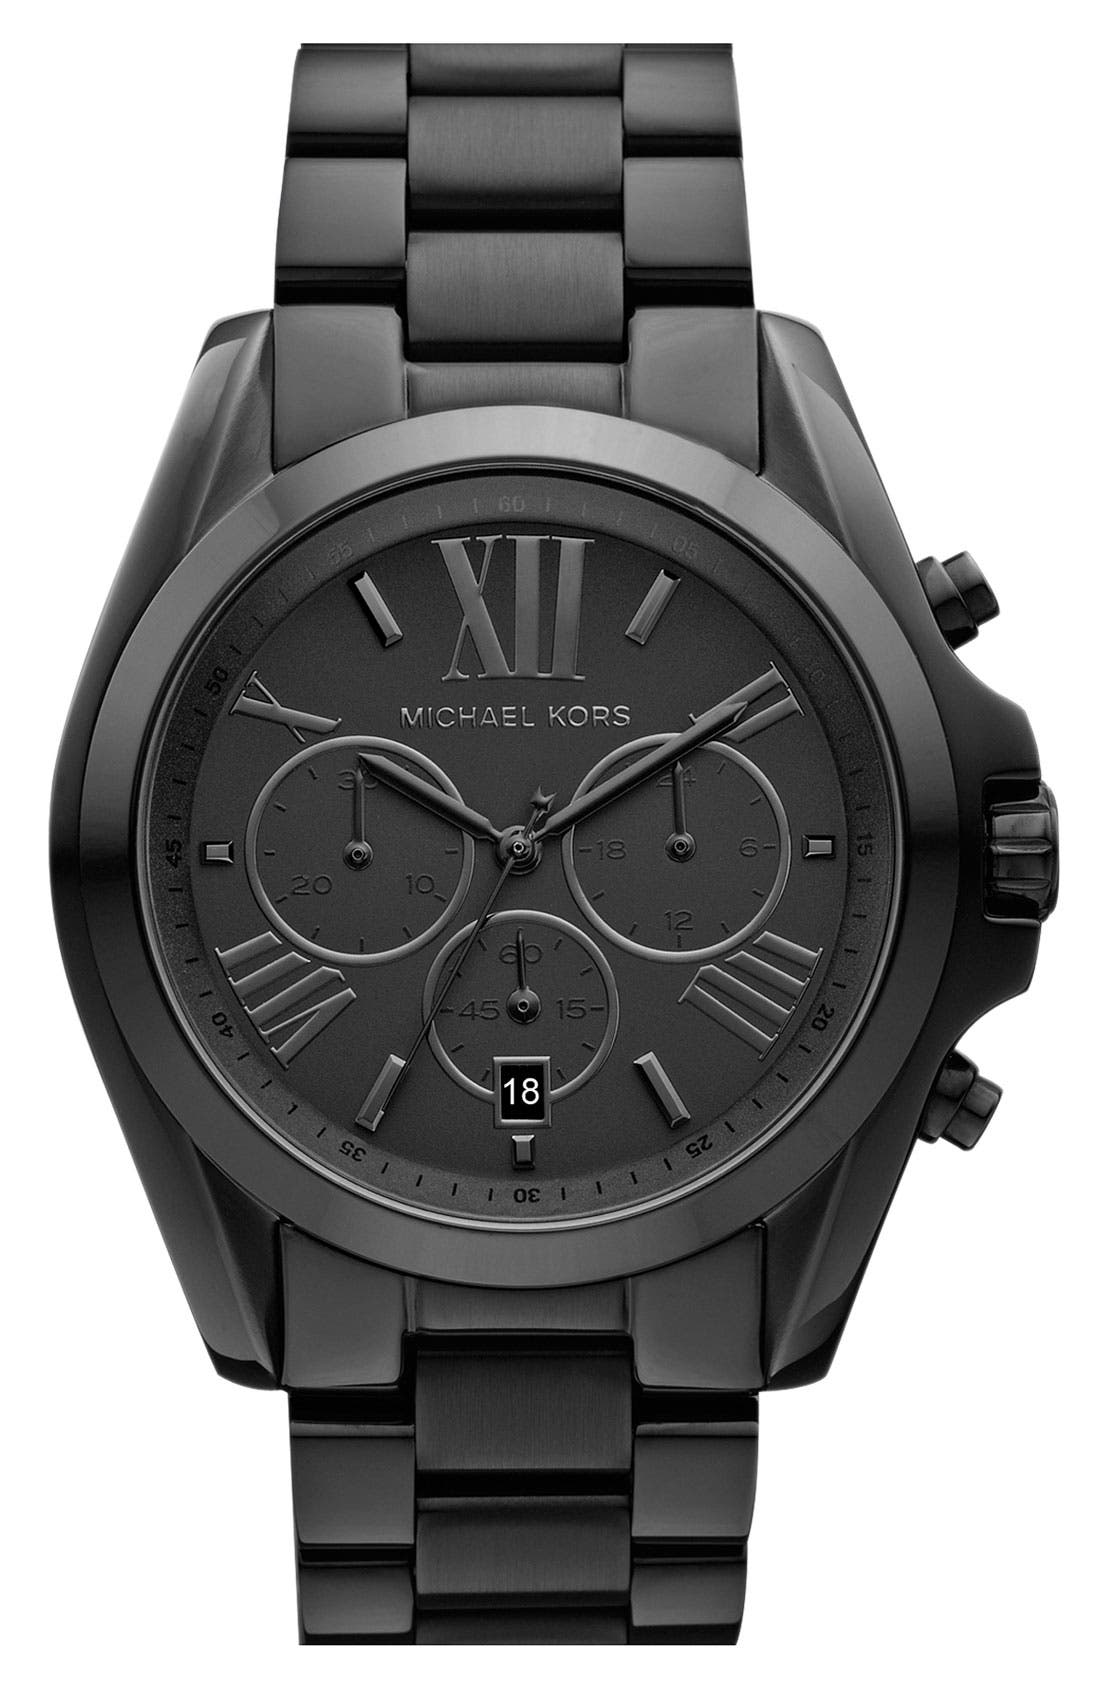 Main Image - Michael Kors 'Bradshaw' Chronograph Bracelet Watch, 43mm